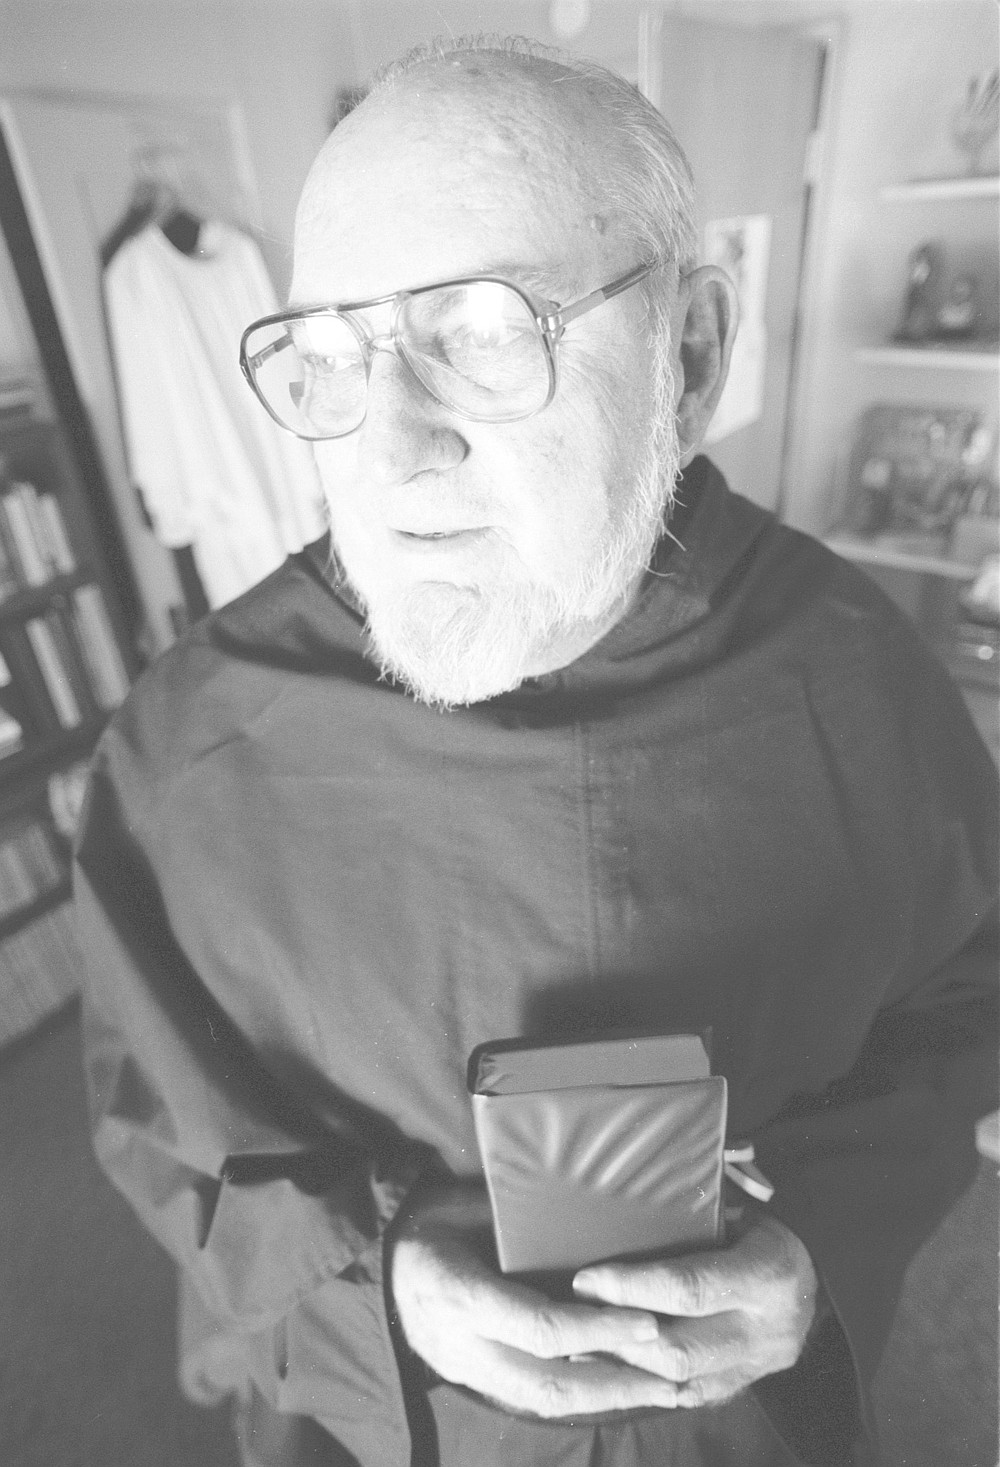 Father William Sullivan: One cause for the vote of no confidence was Aherne's remoteness. He saw Aherne submerged in civic duties, leaving him isolated from many men in the monastery.